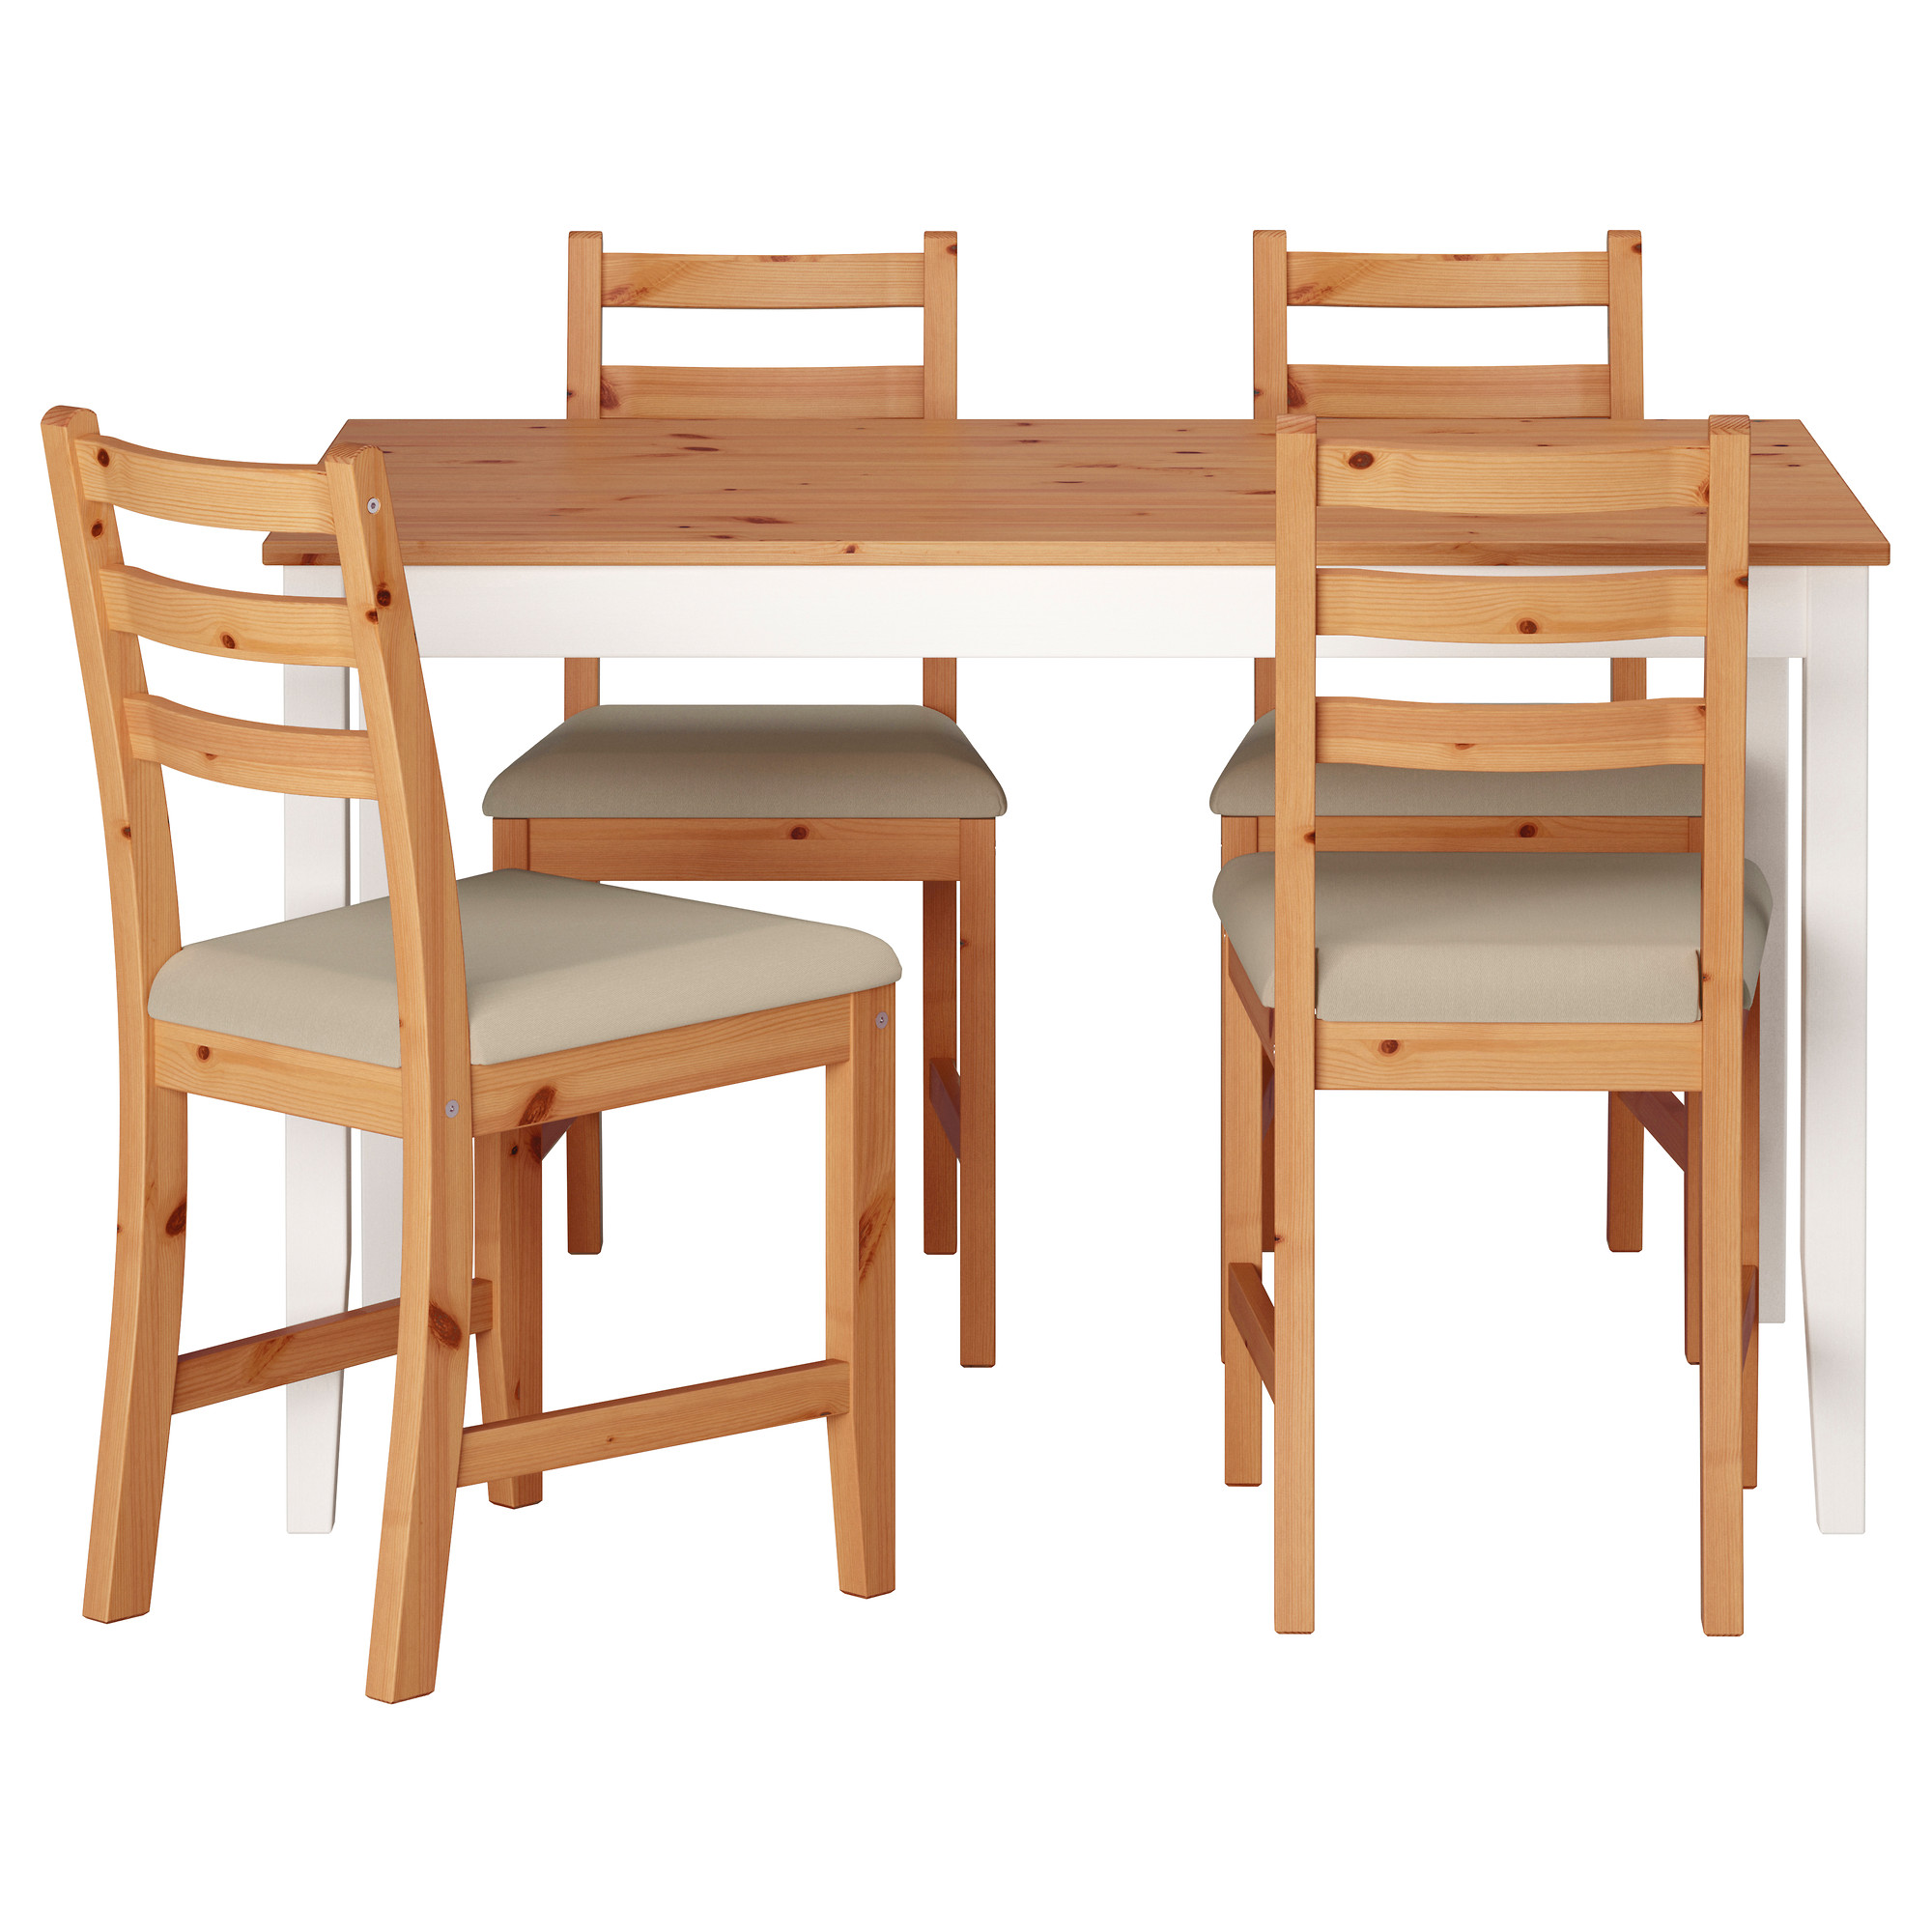 Lerhamn Table And 4 Chairs Light Antique Stain White Stain Vittaryd Beige Ikea Hong Kong And Macau